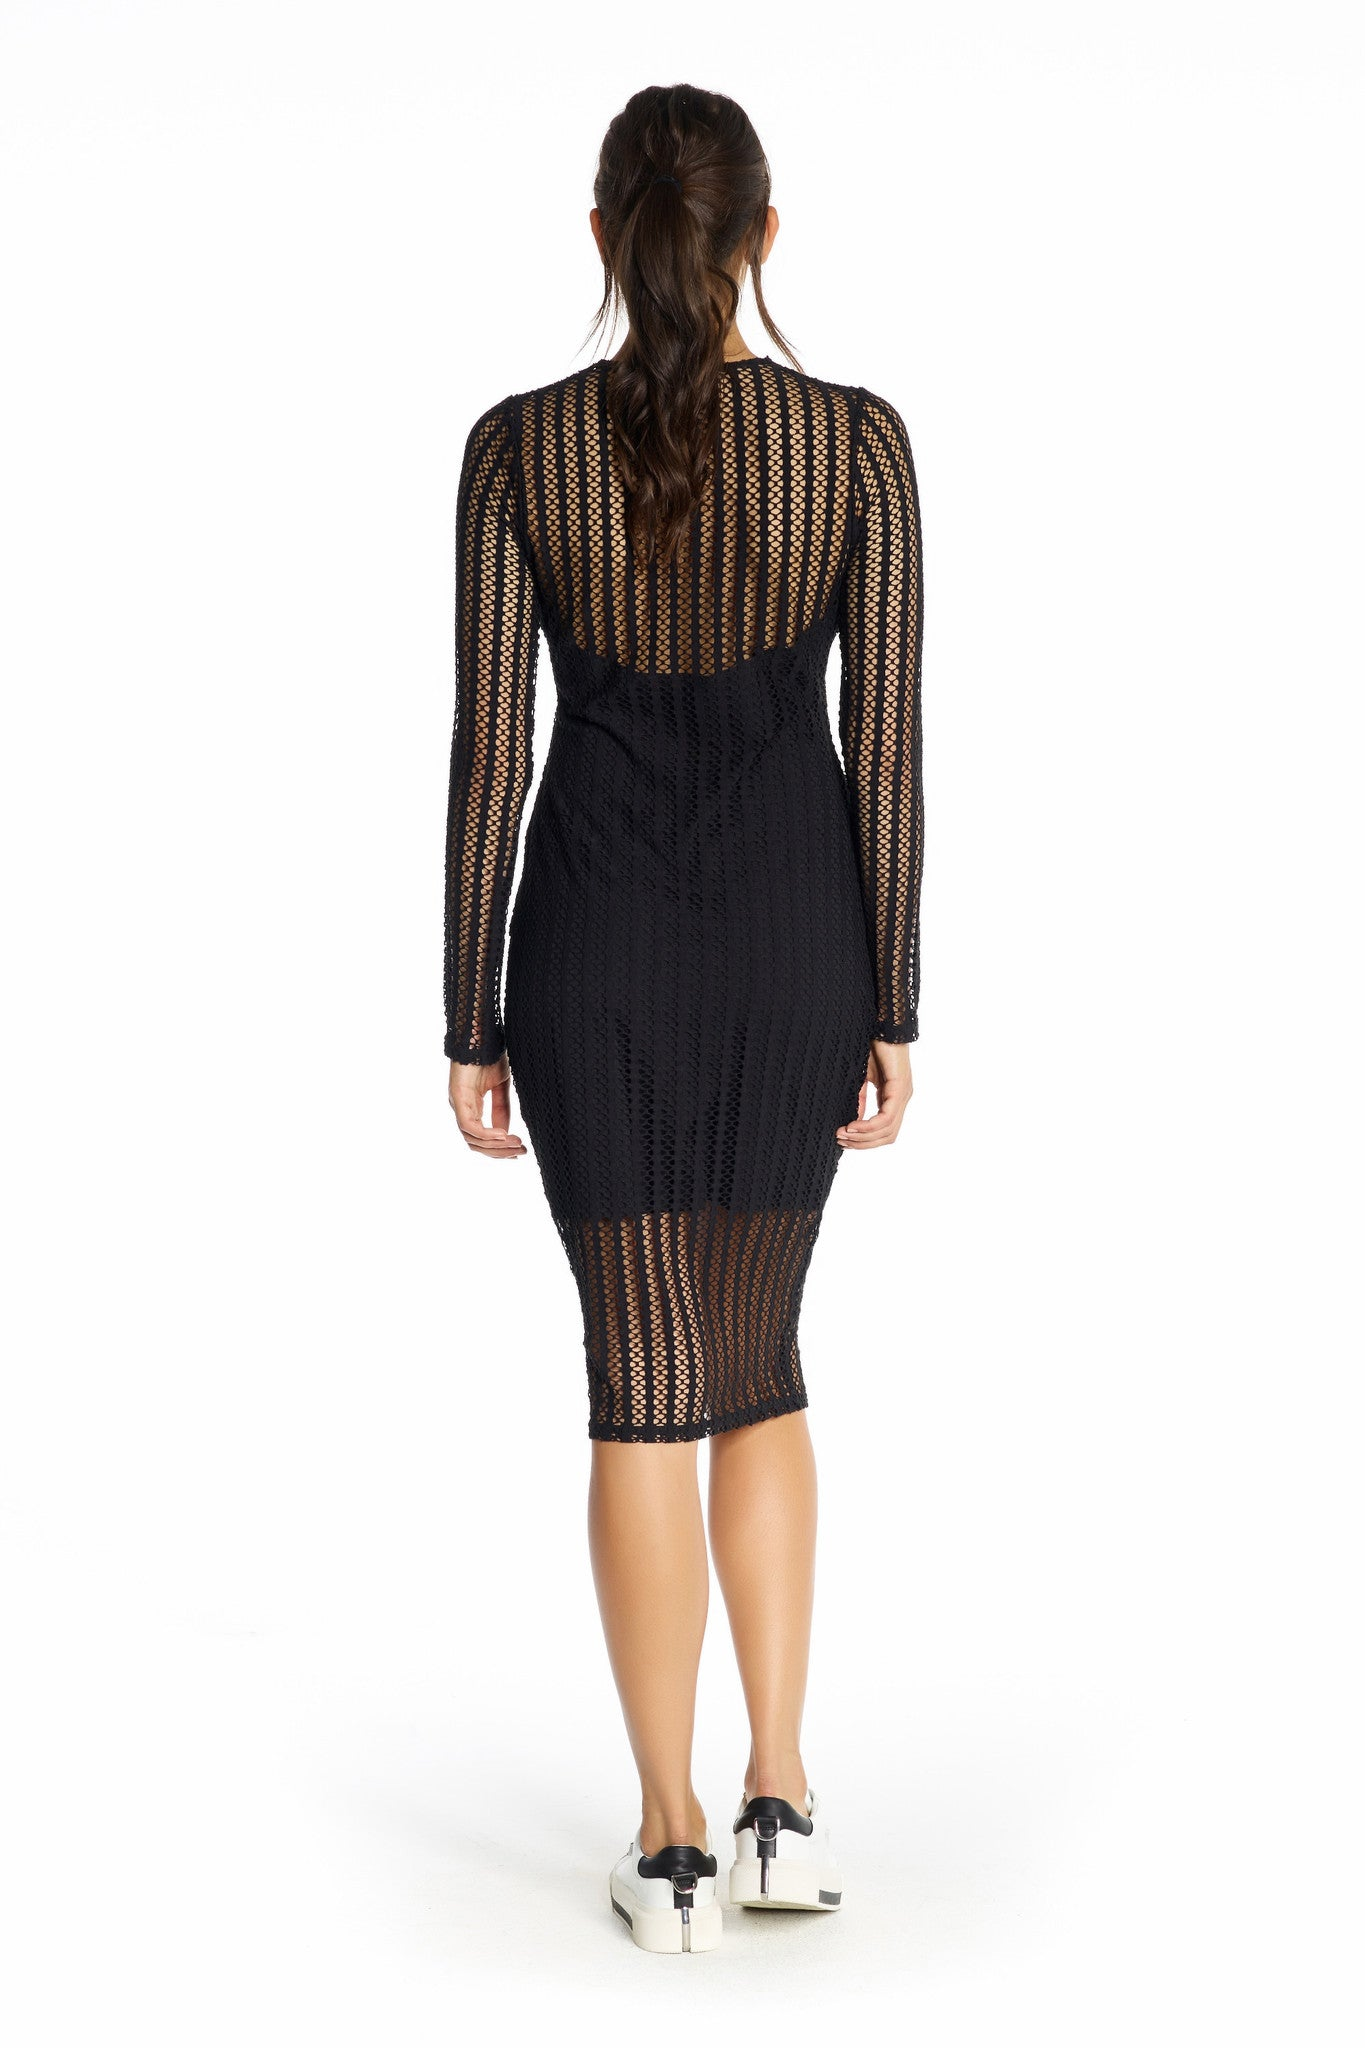 LATTICE JERSEY LONG SLEEVE DRESS DRESSES by KENDALL + KYLIE